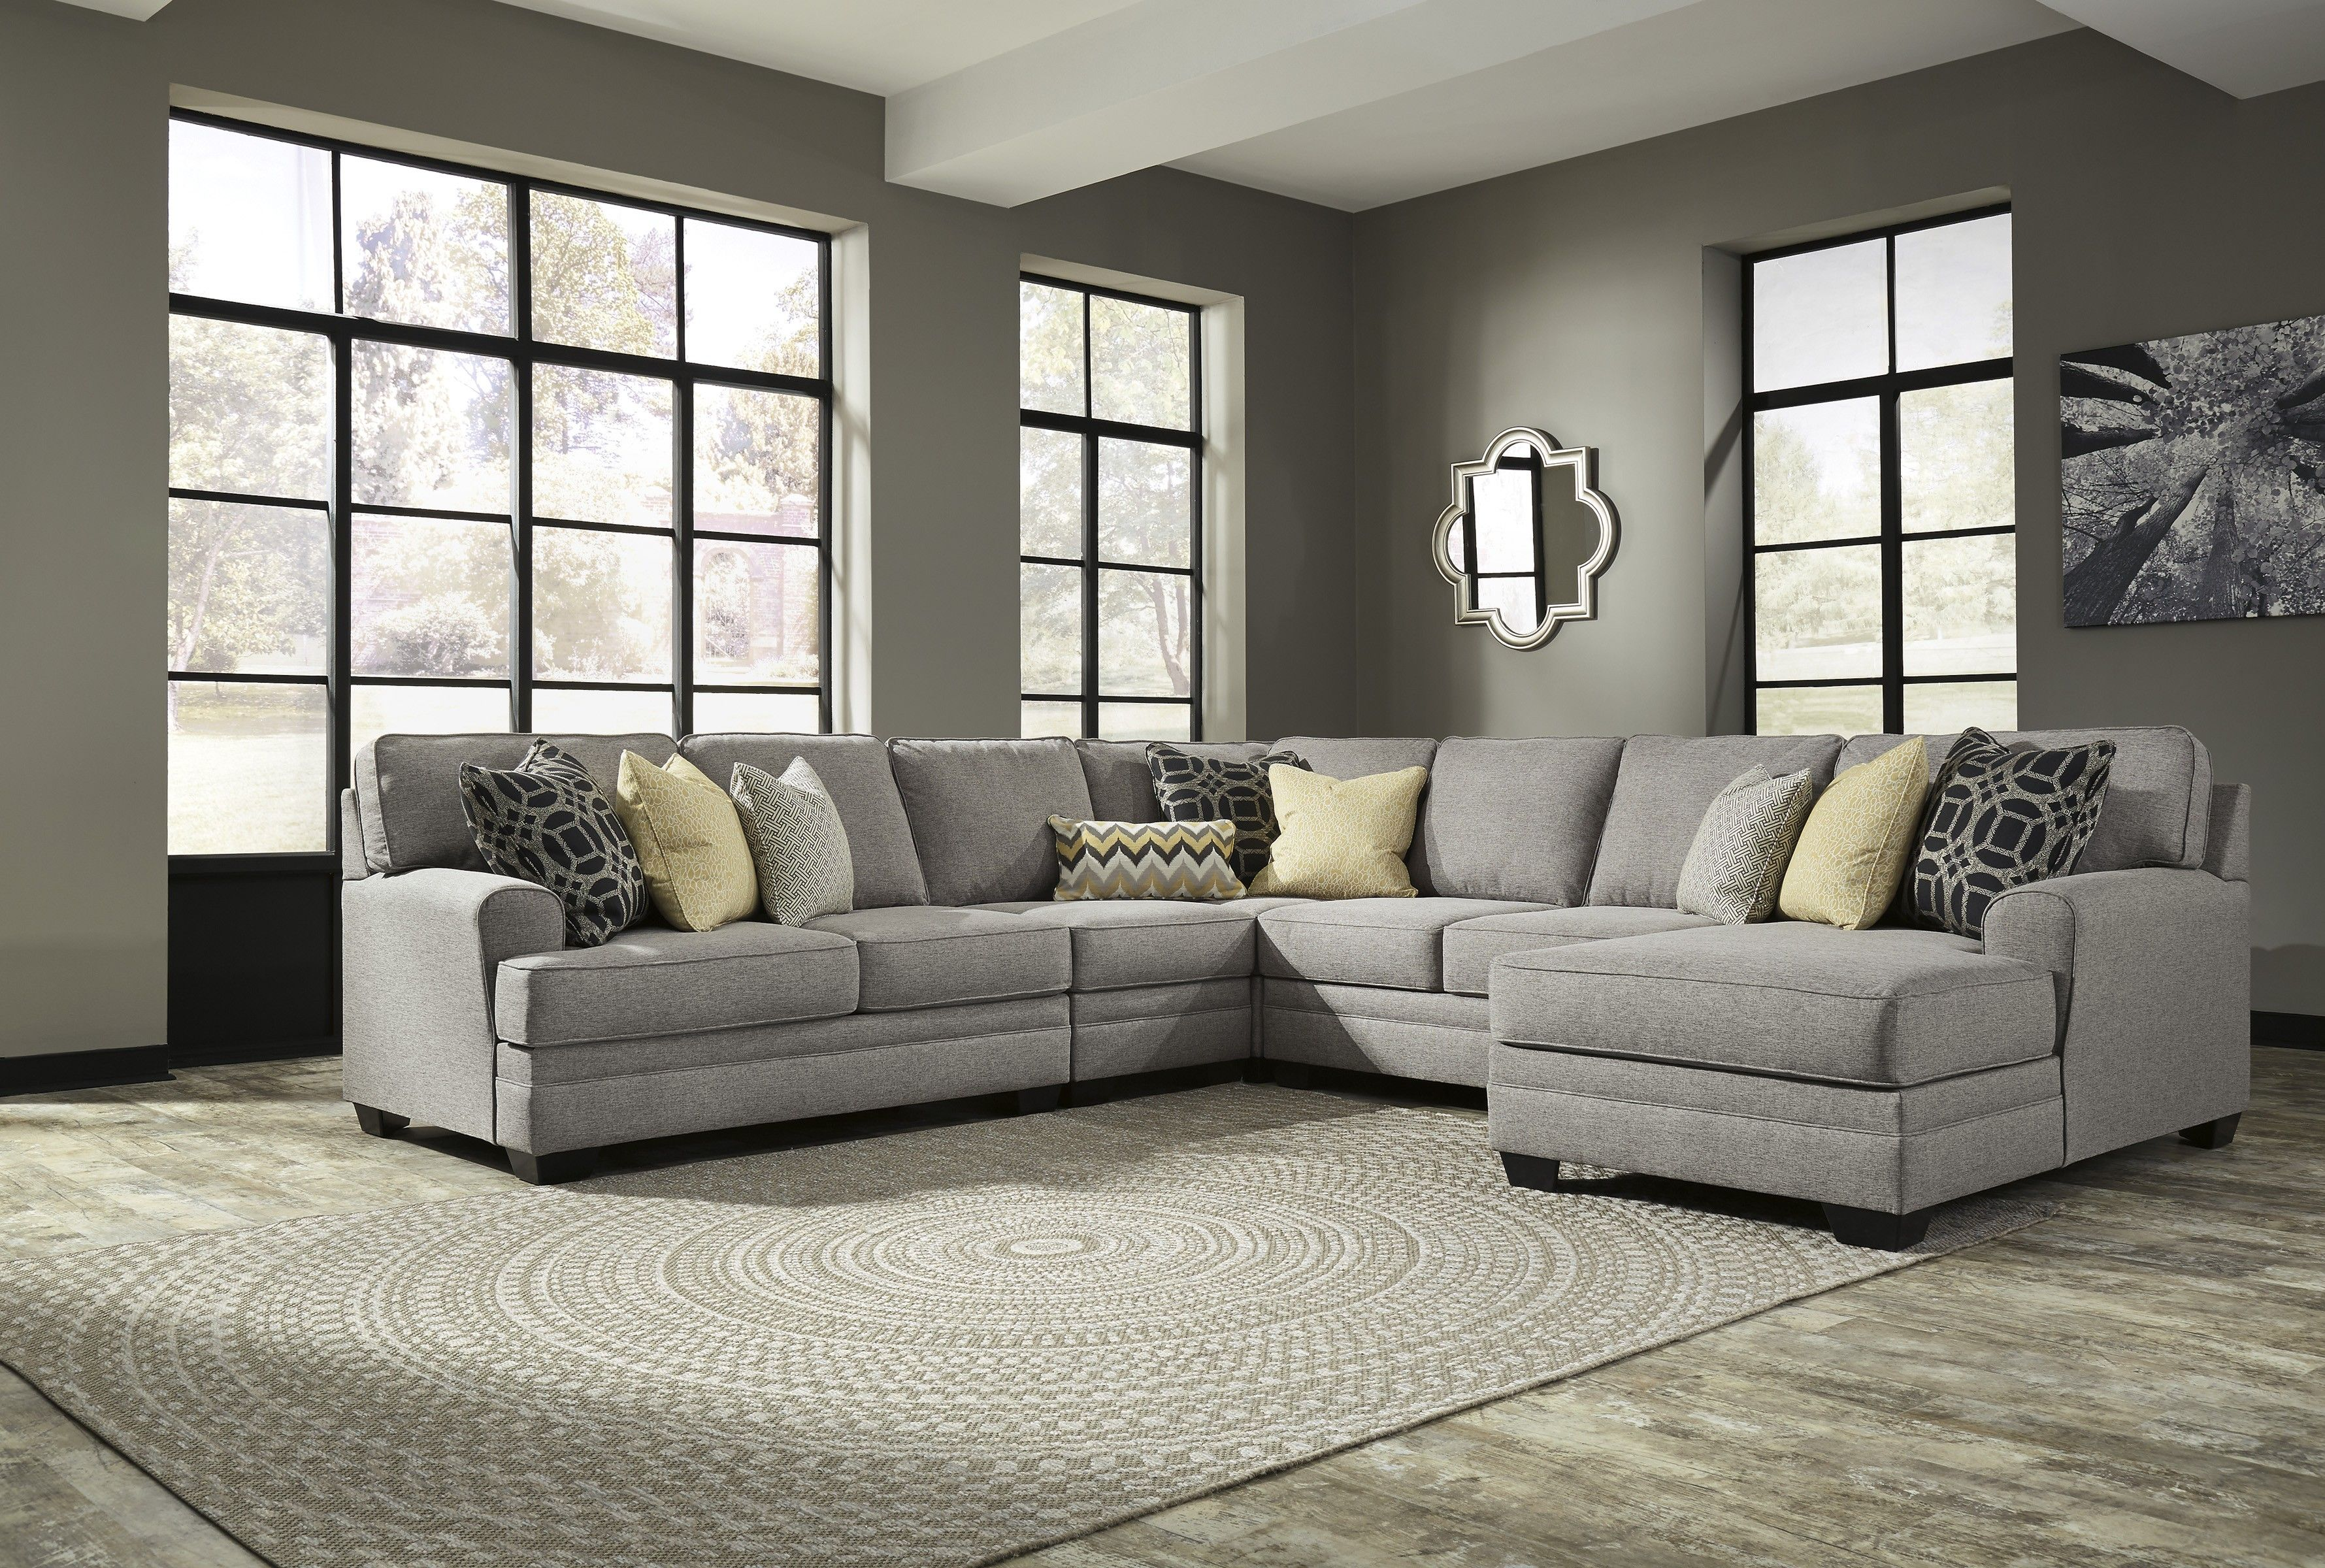 Buy Cresson 5 Piece Sectional Laf Loveseat With Raf Corner Chaise By Benchcraft From Www Mmfurn